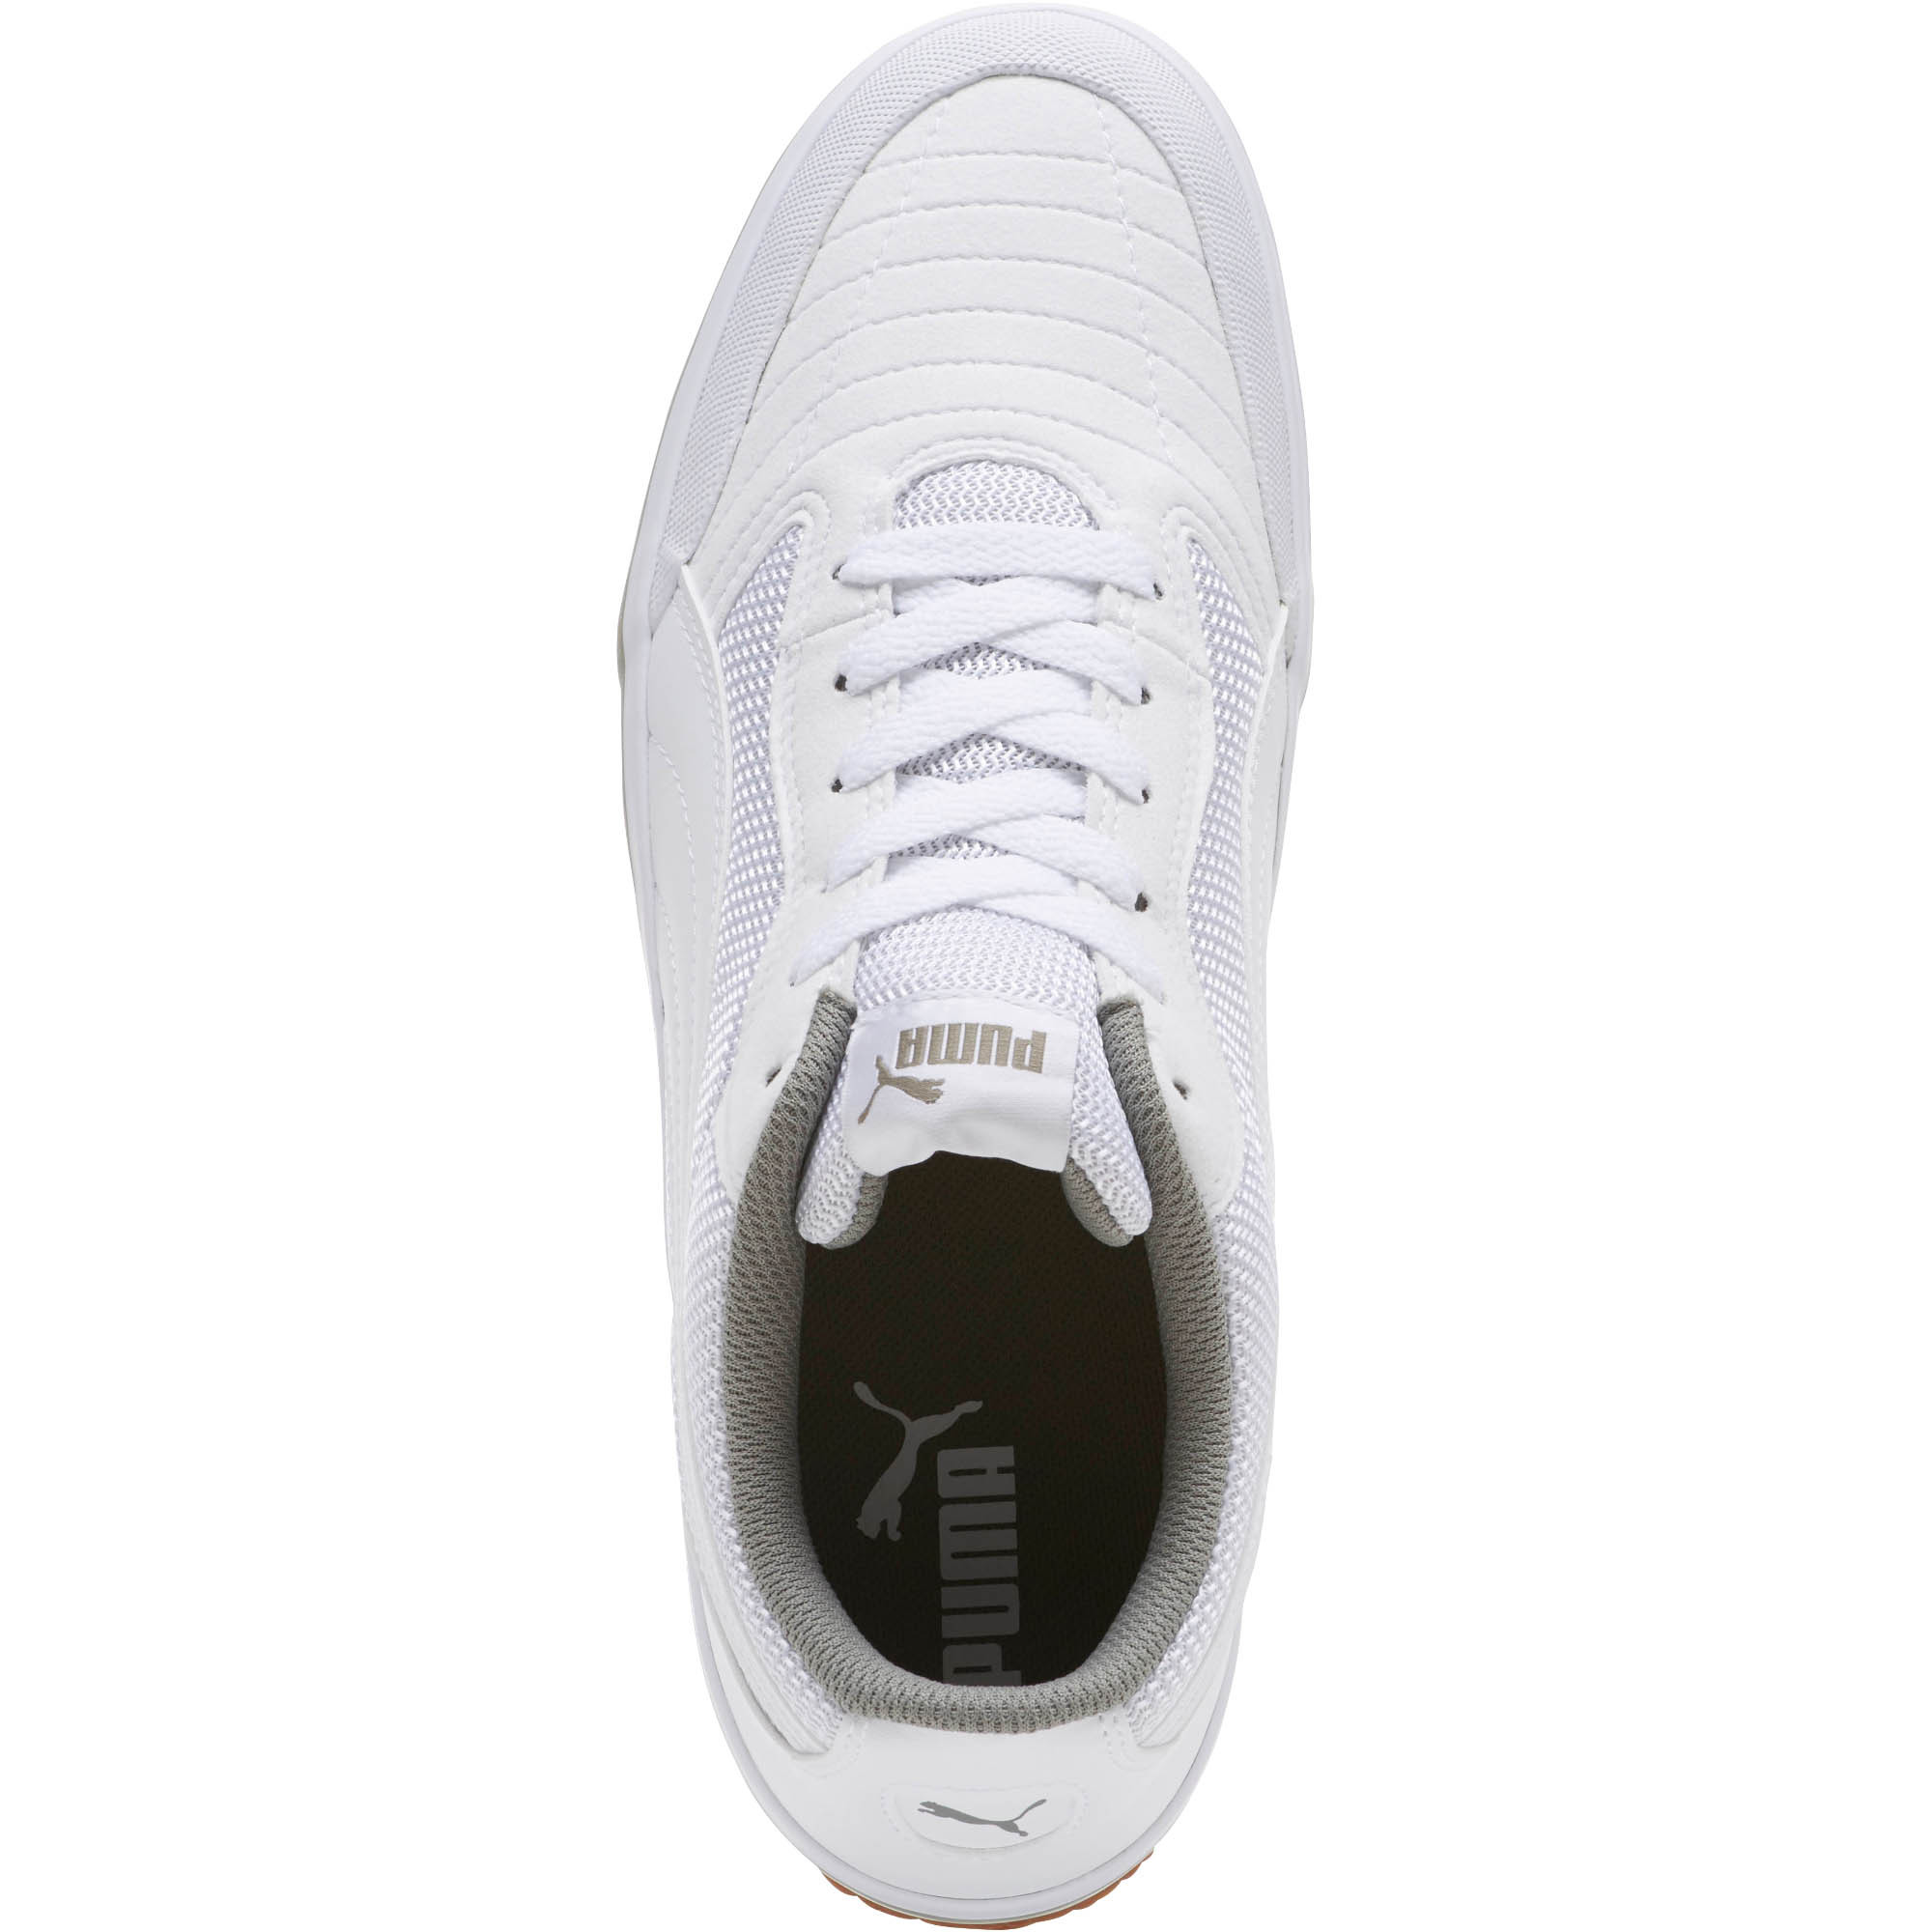 PUMA-Men-039-s-Astro-Sala-Sneakers thumbnail 15